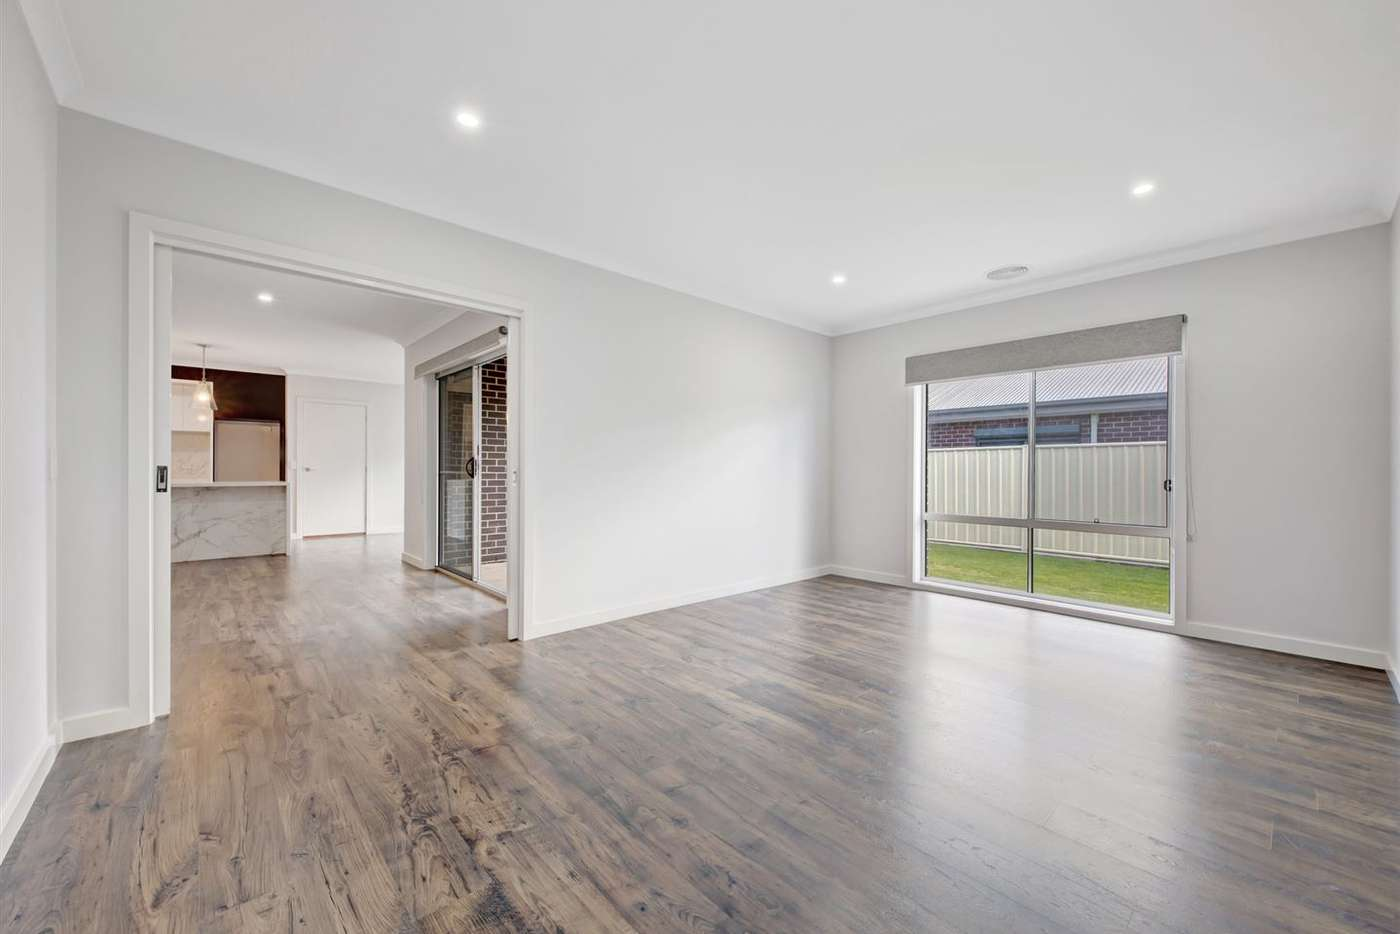 Sixth view of Homely house listing, 13 Dalwhinnie Drive, Wangaratta VIC 3677